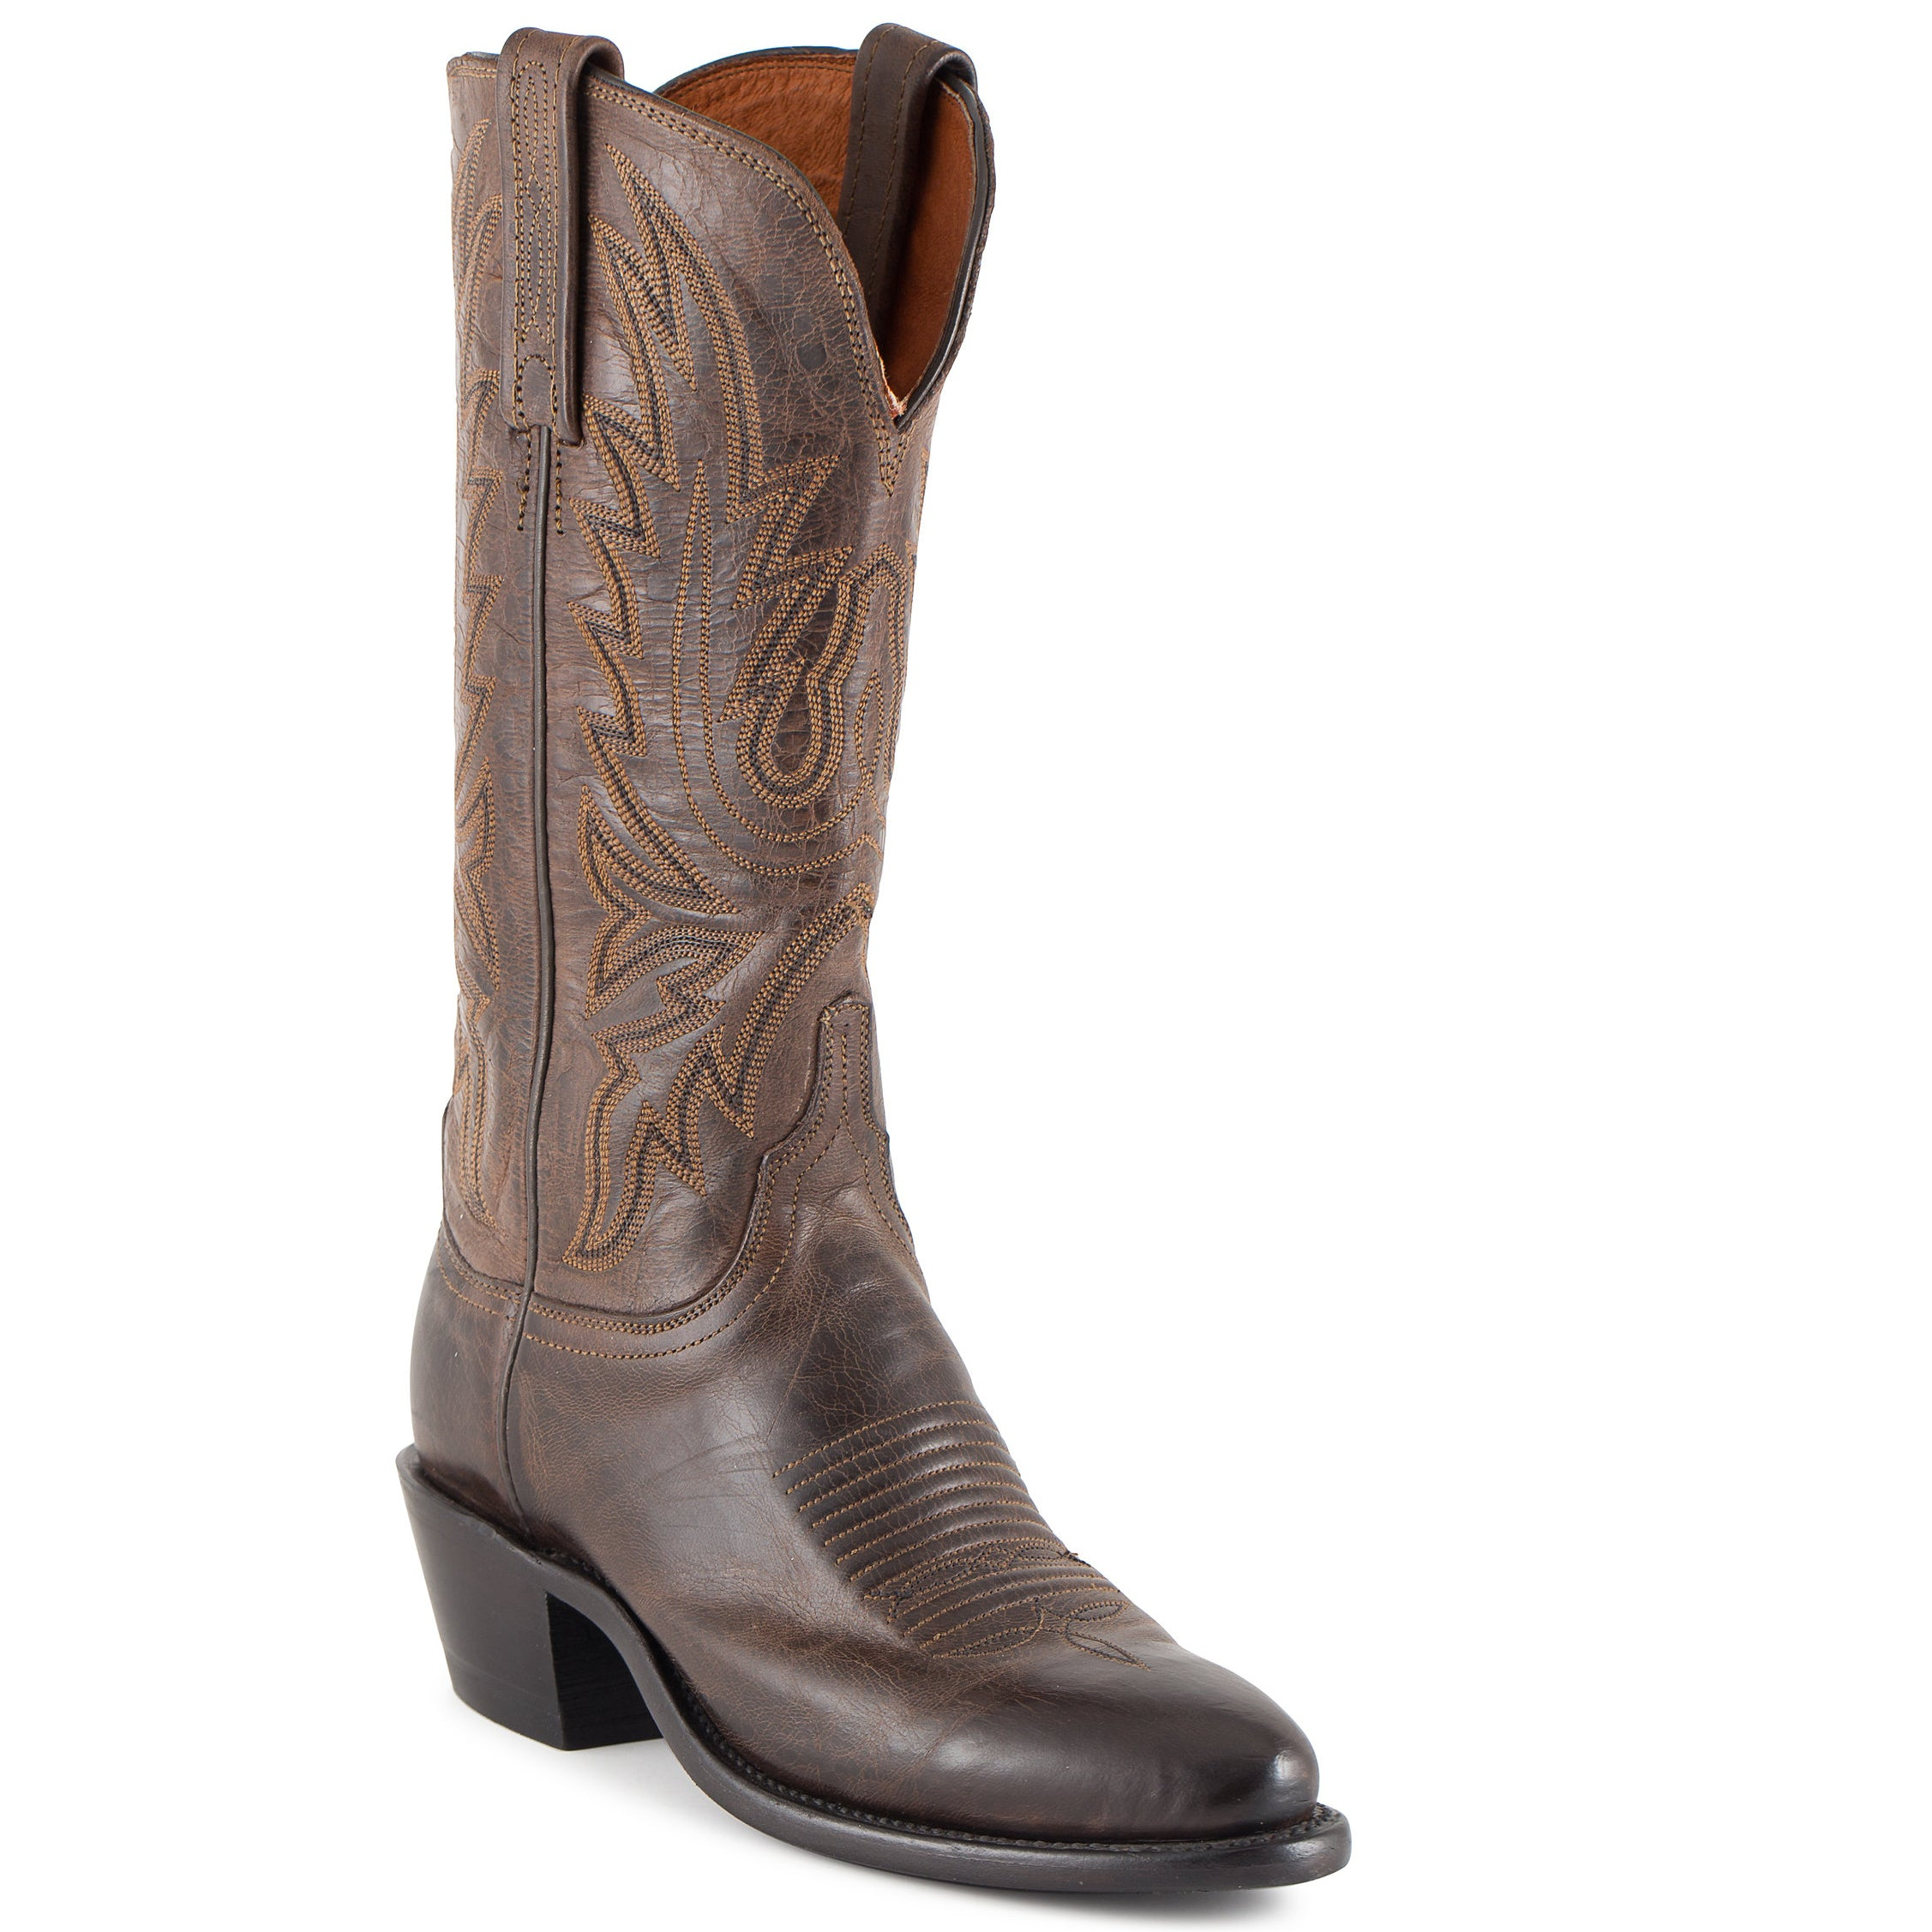 282df4987659f Women's Lucchese Mad Dog Goat Boots Chocolate #N4554-R4. Hover to zoom